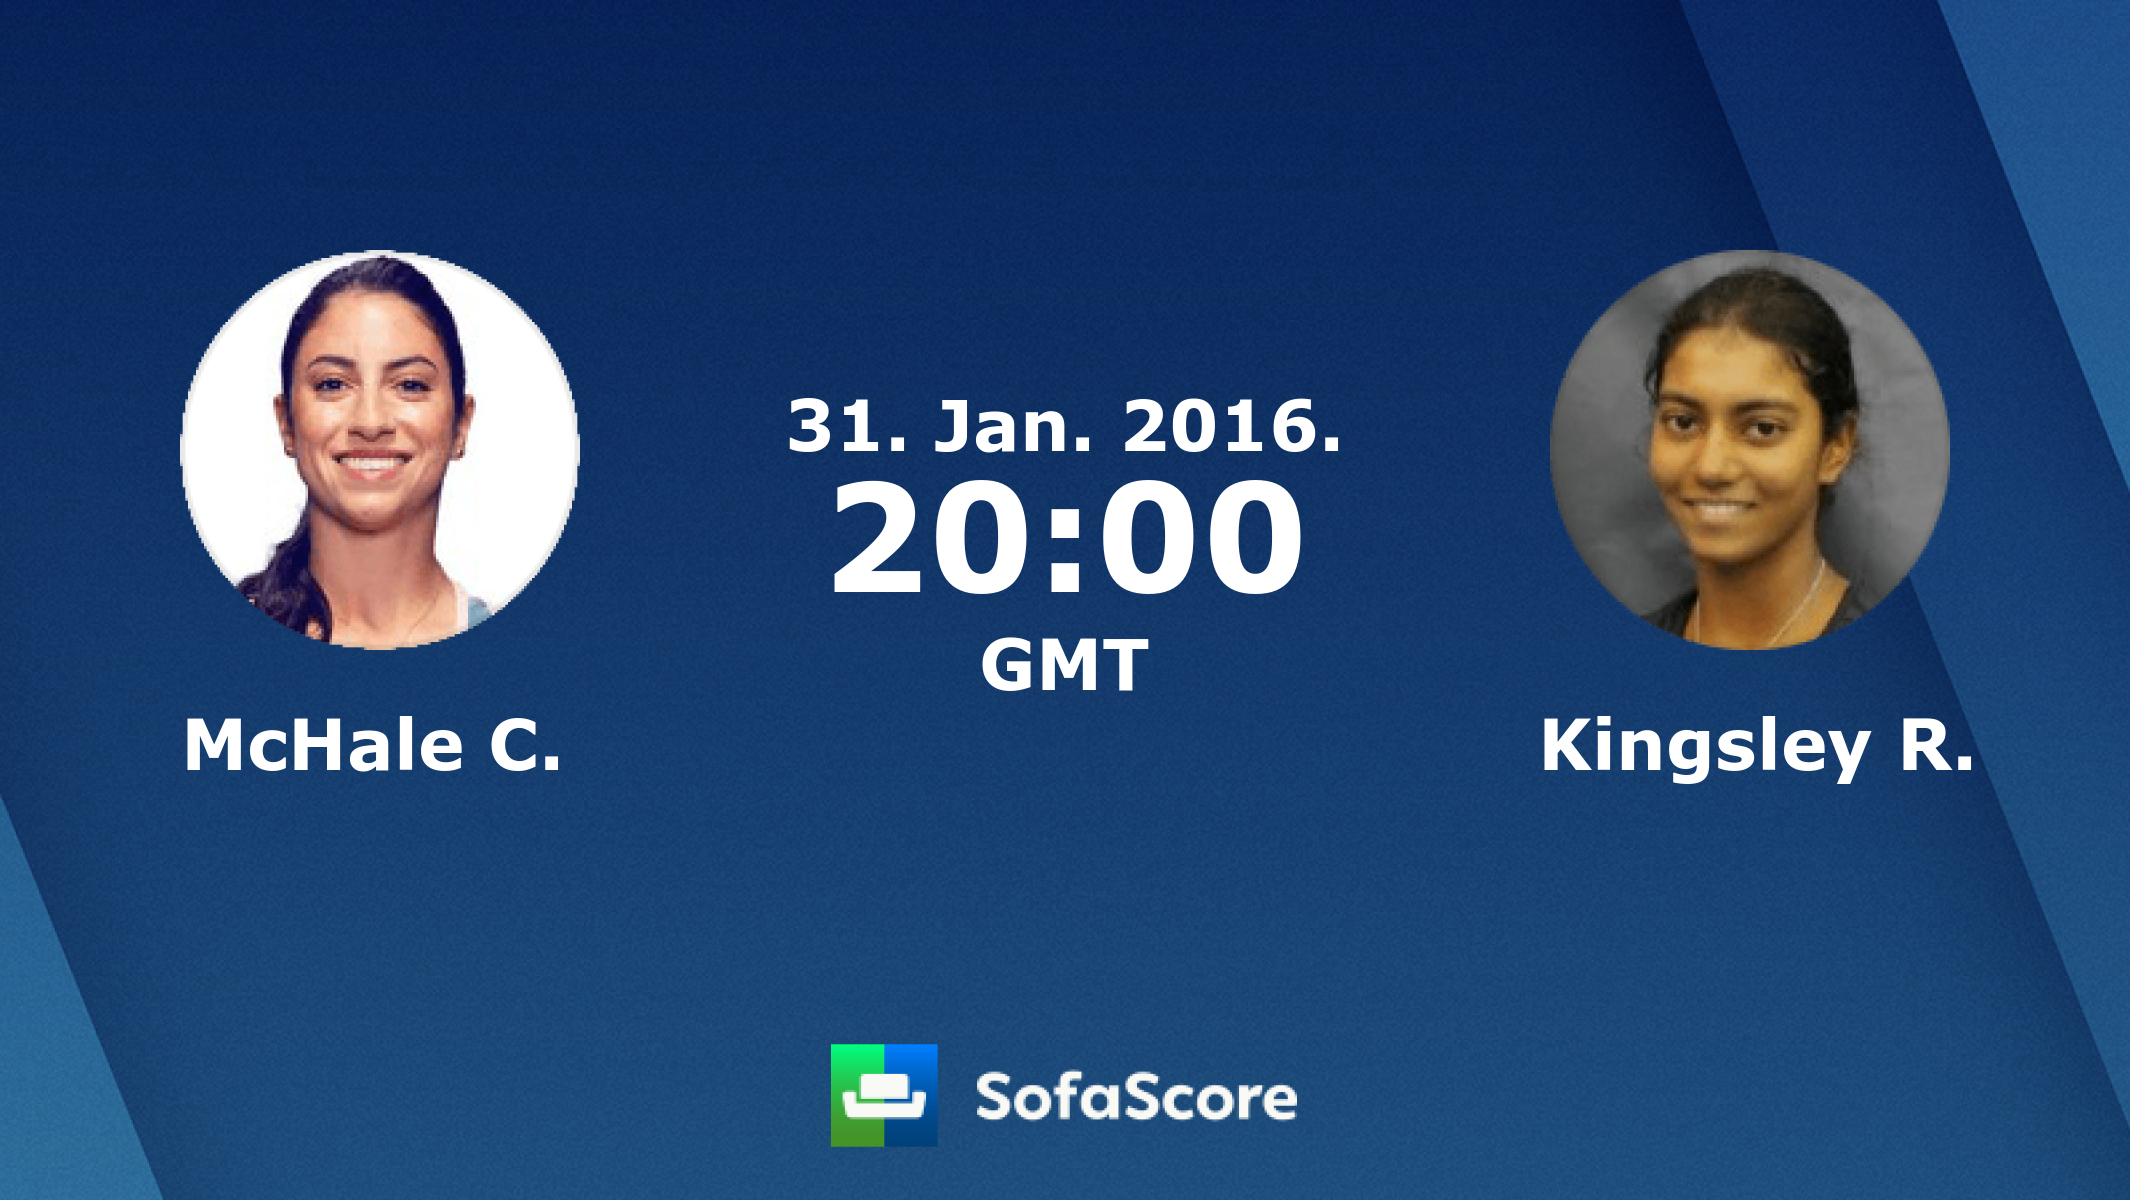 Mchale C. Kingsley R. live score, video stream and H2H results - SofaScore .com